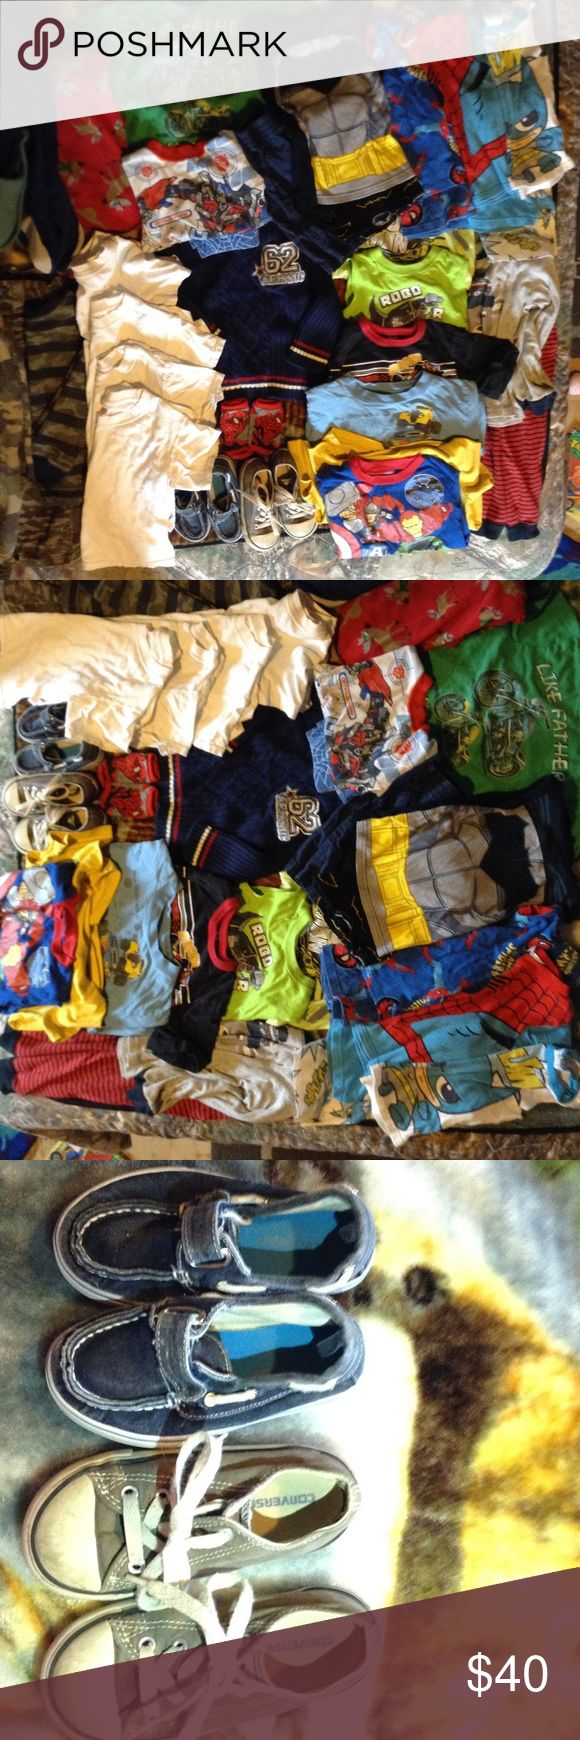 3T/4T LOT Hero Boys Clothes! Converse. 35 pieces 35 piece lot 3T&4T. 2 pairs of Shoes size 7 1 Converse(has wear) other like new. 12 t-shirts a few have wear. 4 shirt/shorts 2spiderman 2batman (1batman was long sleeves/pants has been cut off. 2 sweater. 2 sleepers (red has feet cut off)1sleep outfit deer long sleeve, red&black pants (has lil hole in pants on front leg) 1 corduroy&1cloth camo pants. 1pair navy shorts. 1 pair spiderman socks. 1 transformer shirt&1 shorts(both cut off) have to…